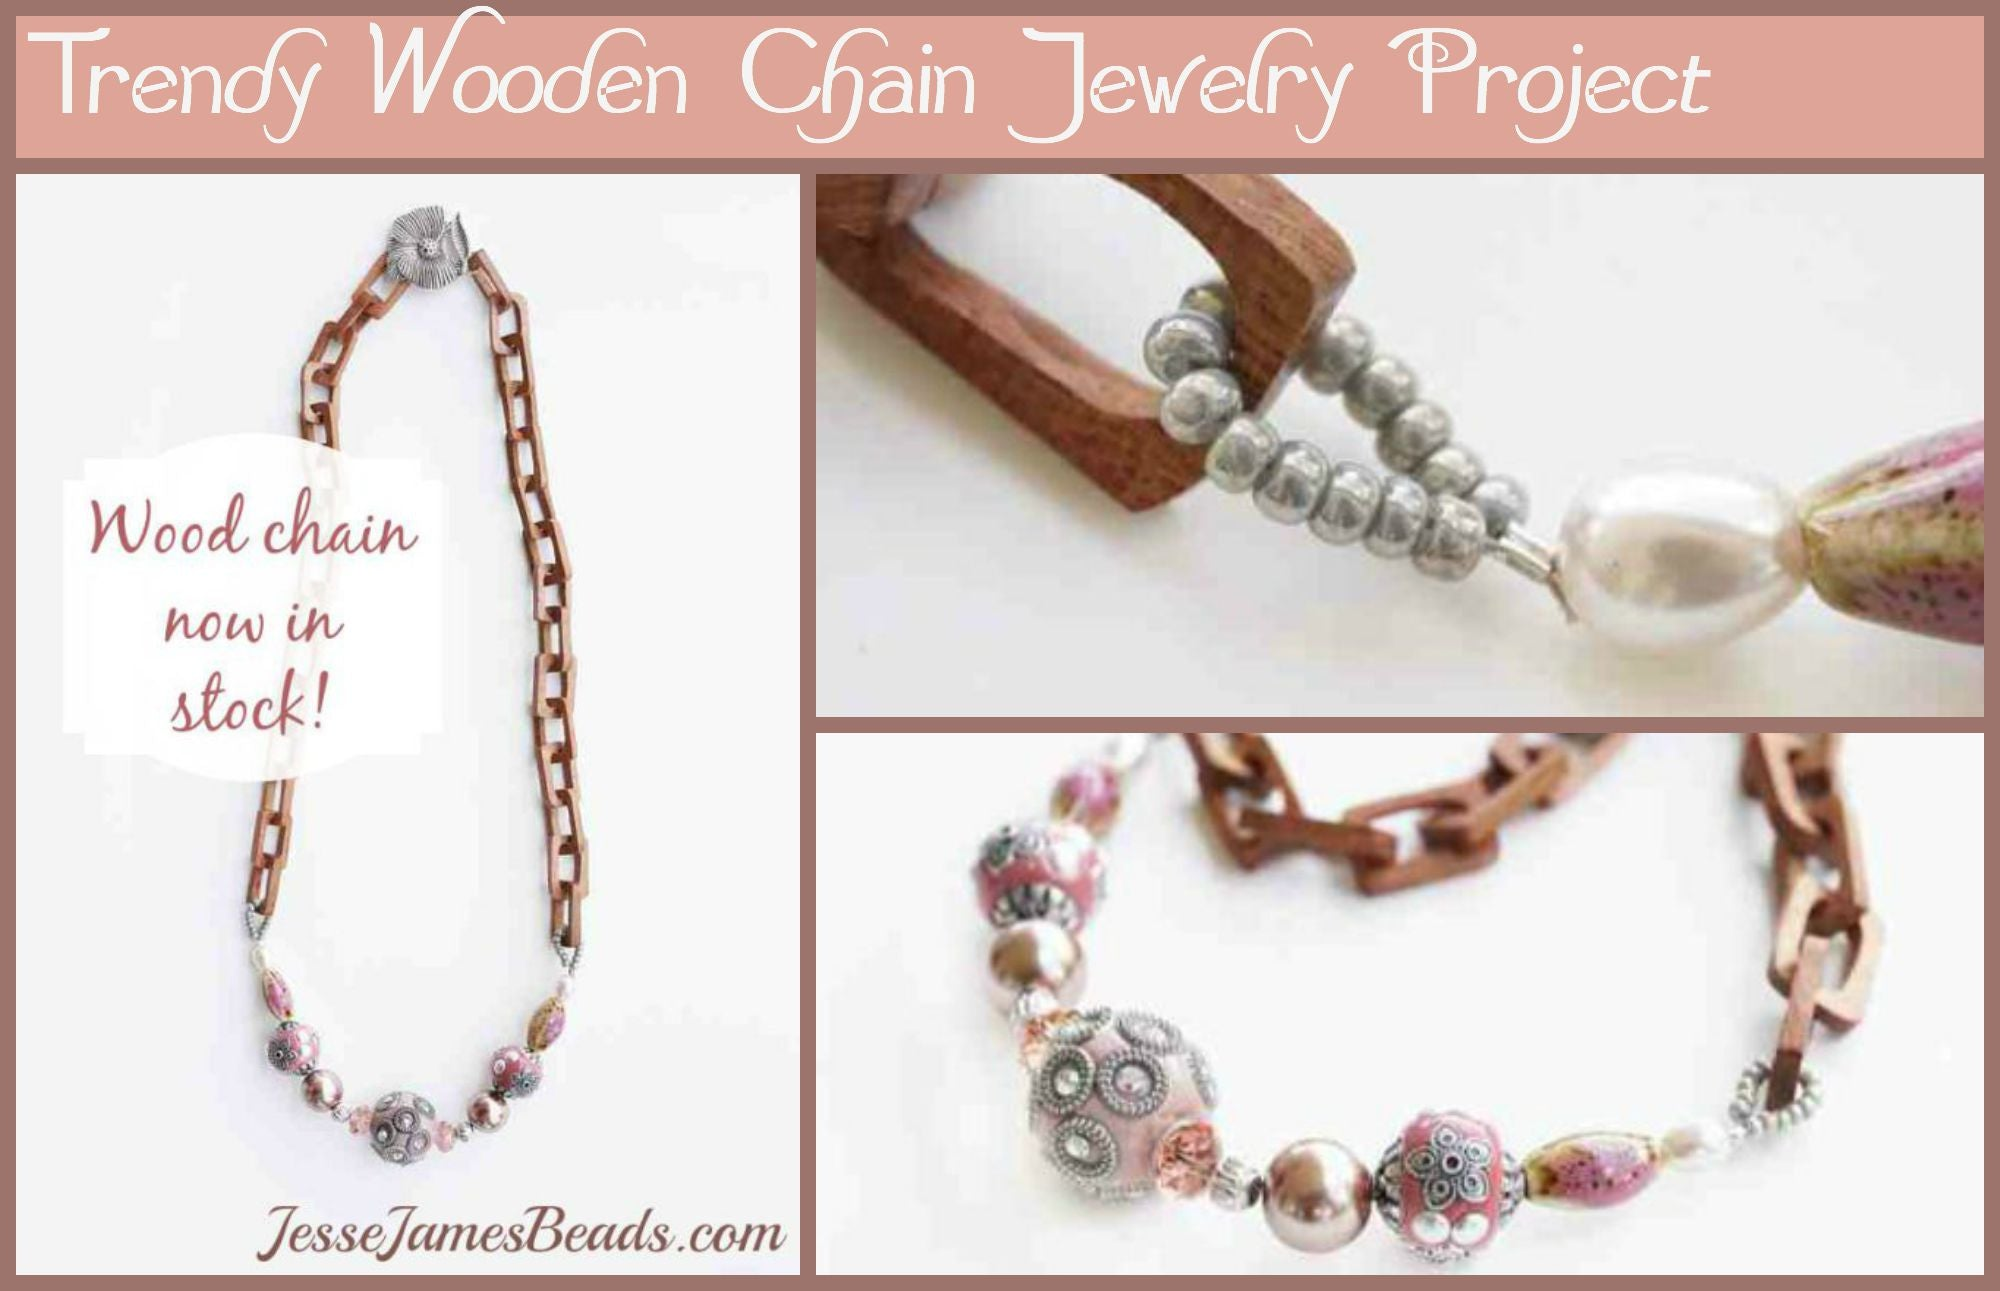 Trend Jewelry - Wooden Chain necklace with beads in Cashmere Rose